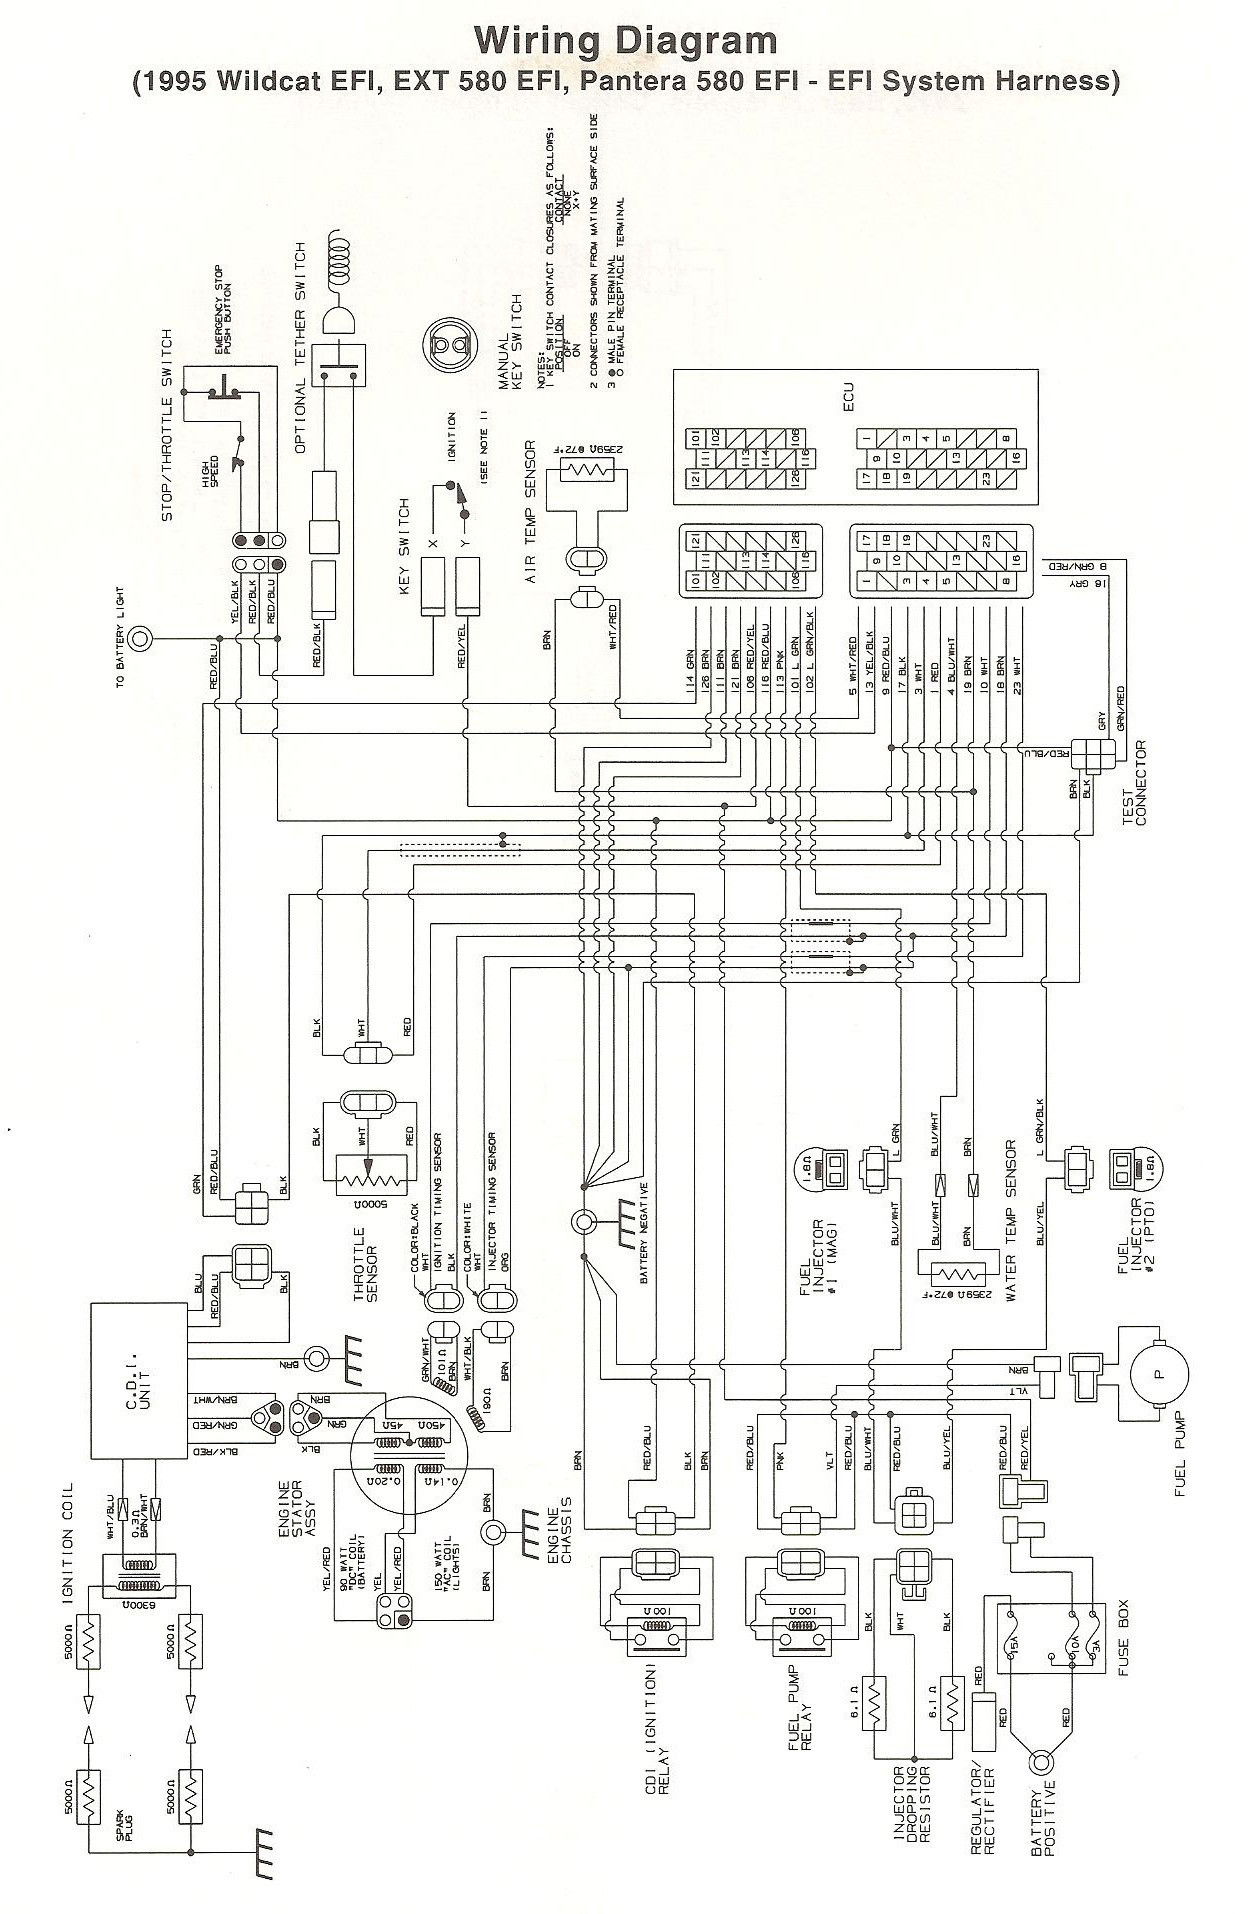 Grizzly Solenoid Wiring Diagram - Wiring Diagrams